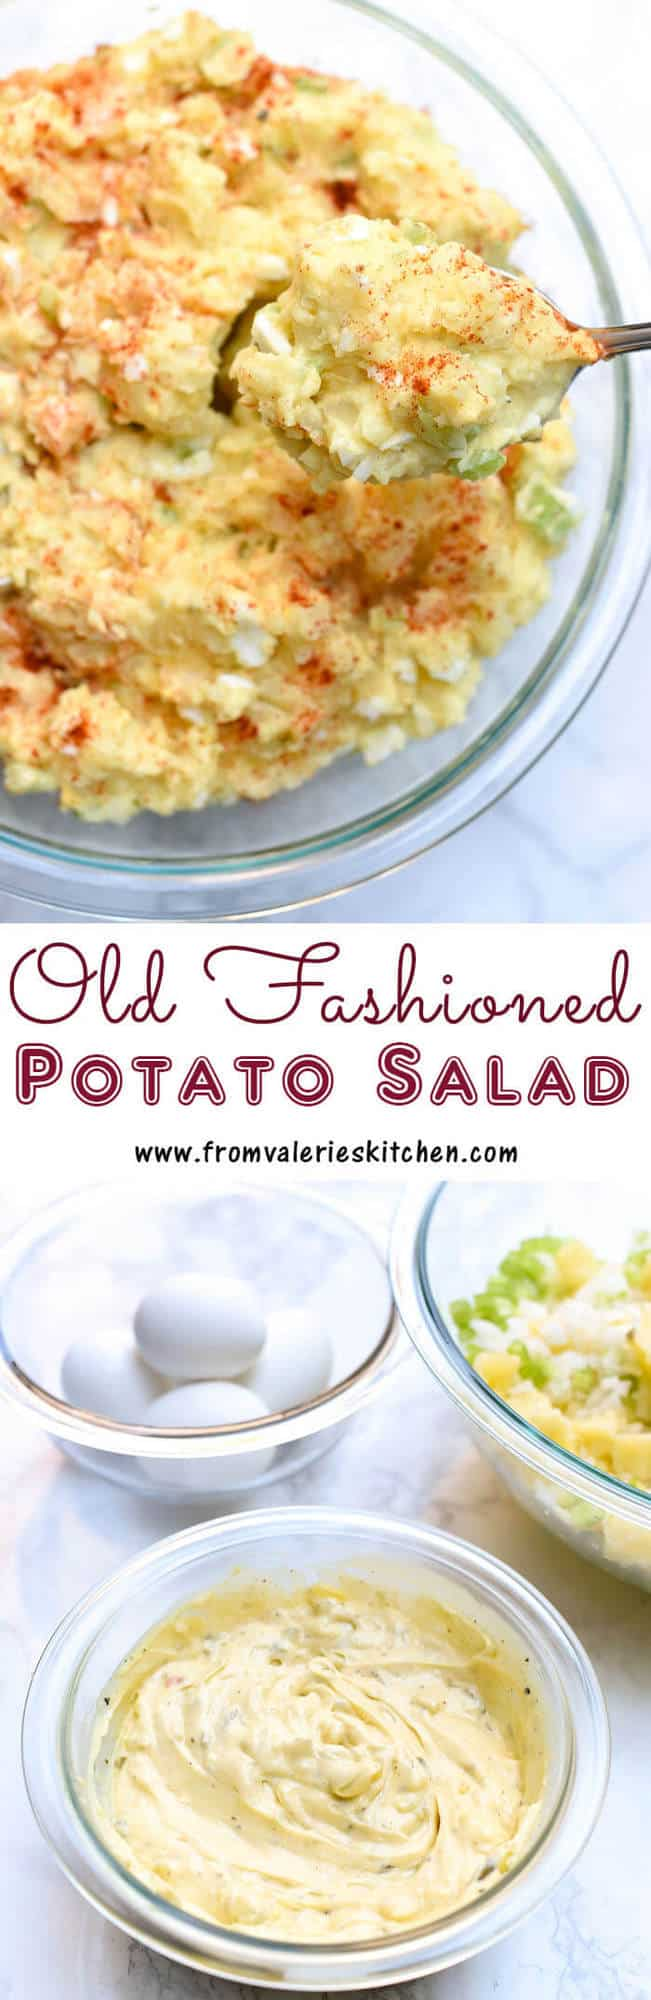 Best old fashioned potato salad recipe 37